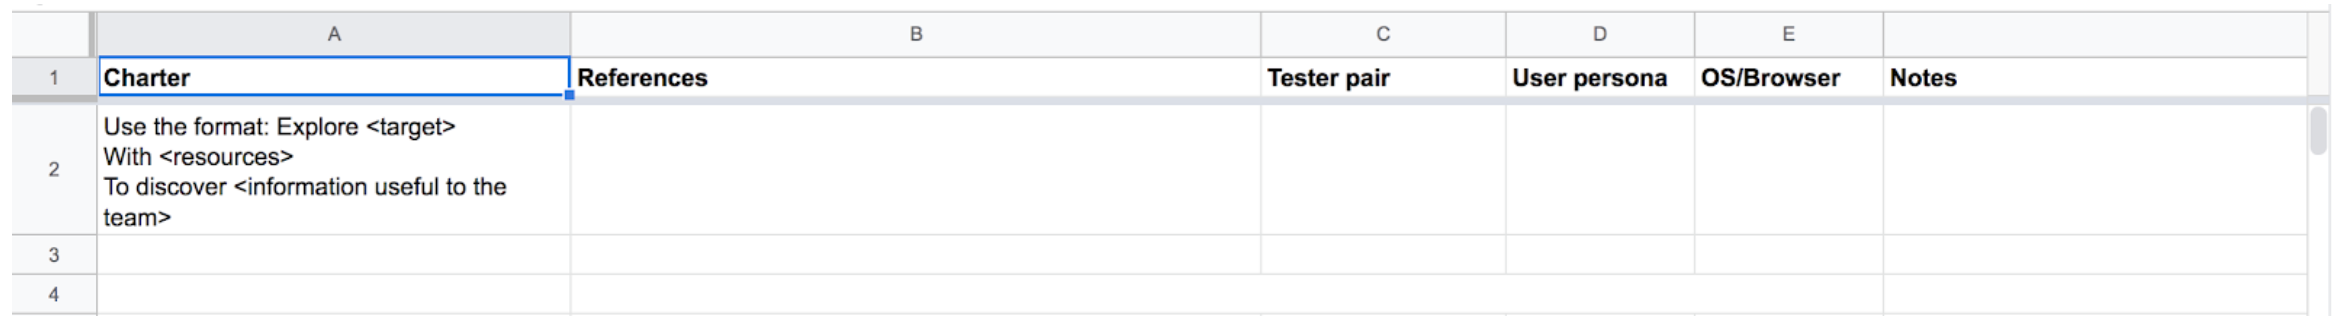 A screenshot showing a section about the exploratory testing charters and a link to a spreadsheet for them.